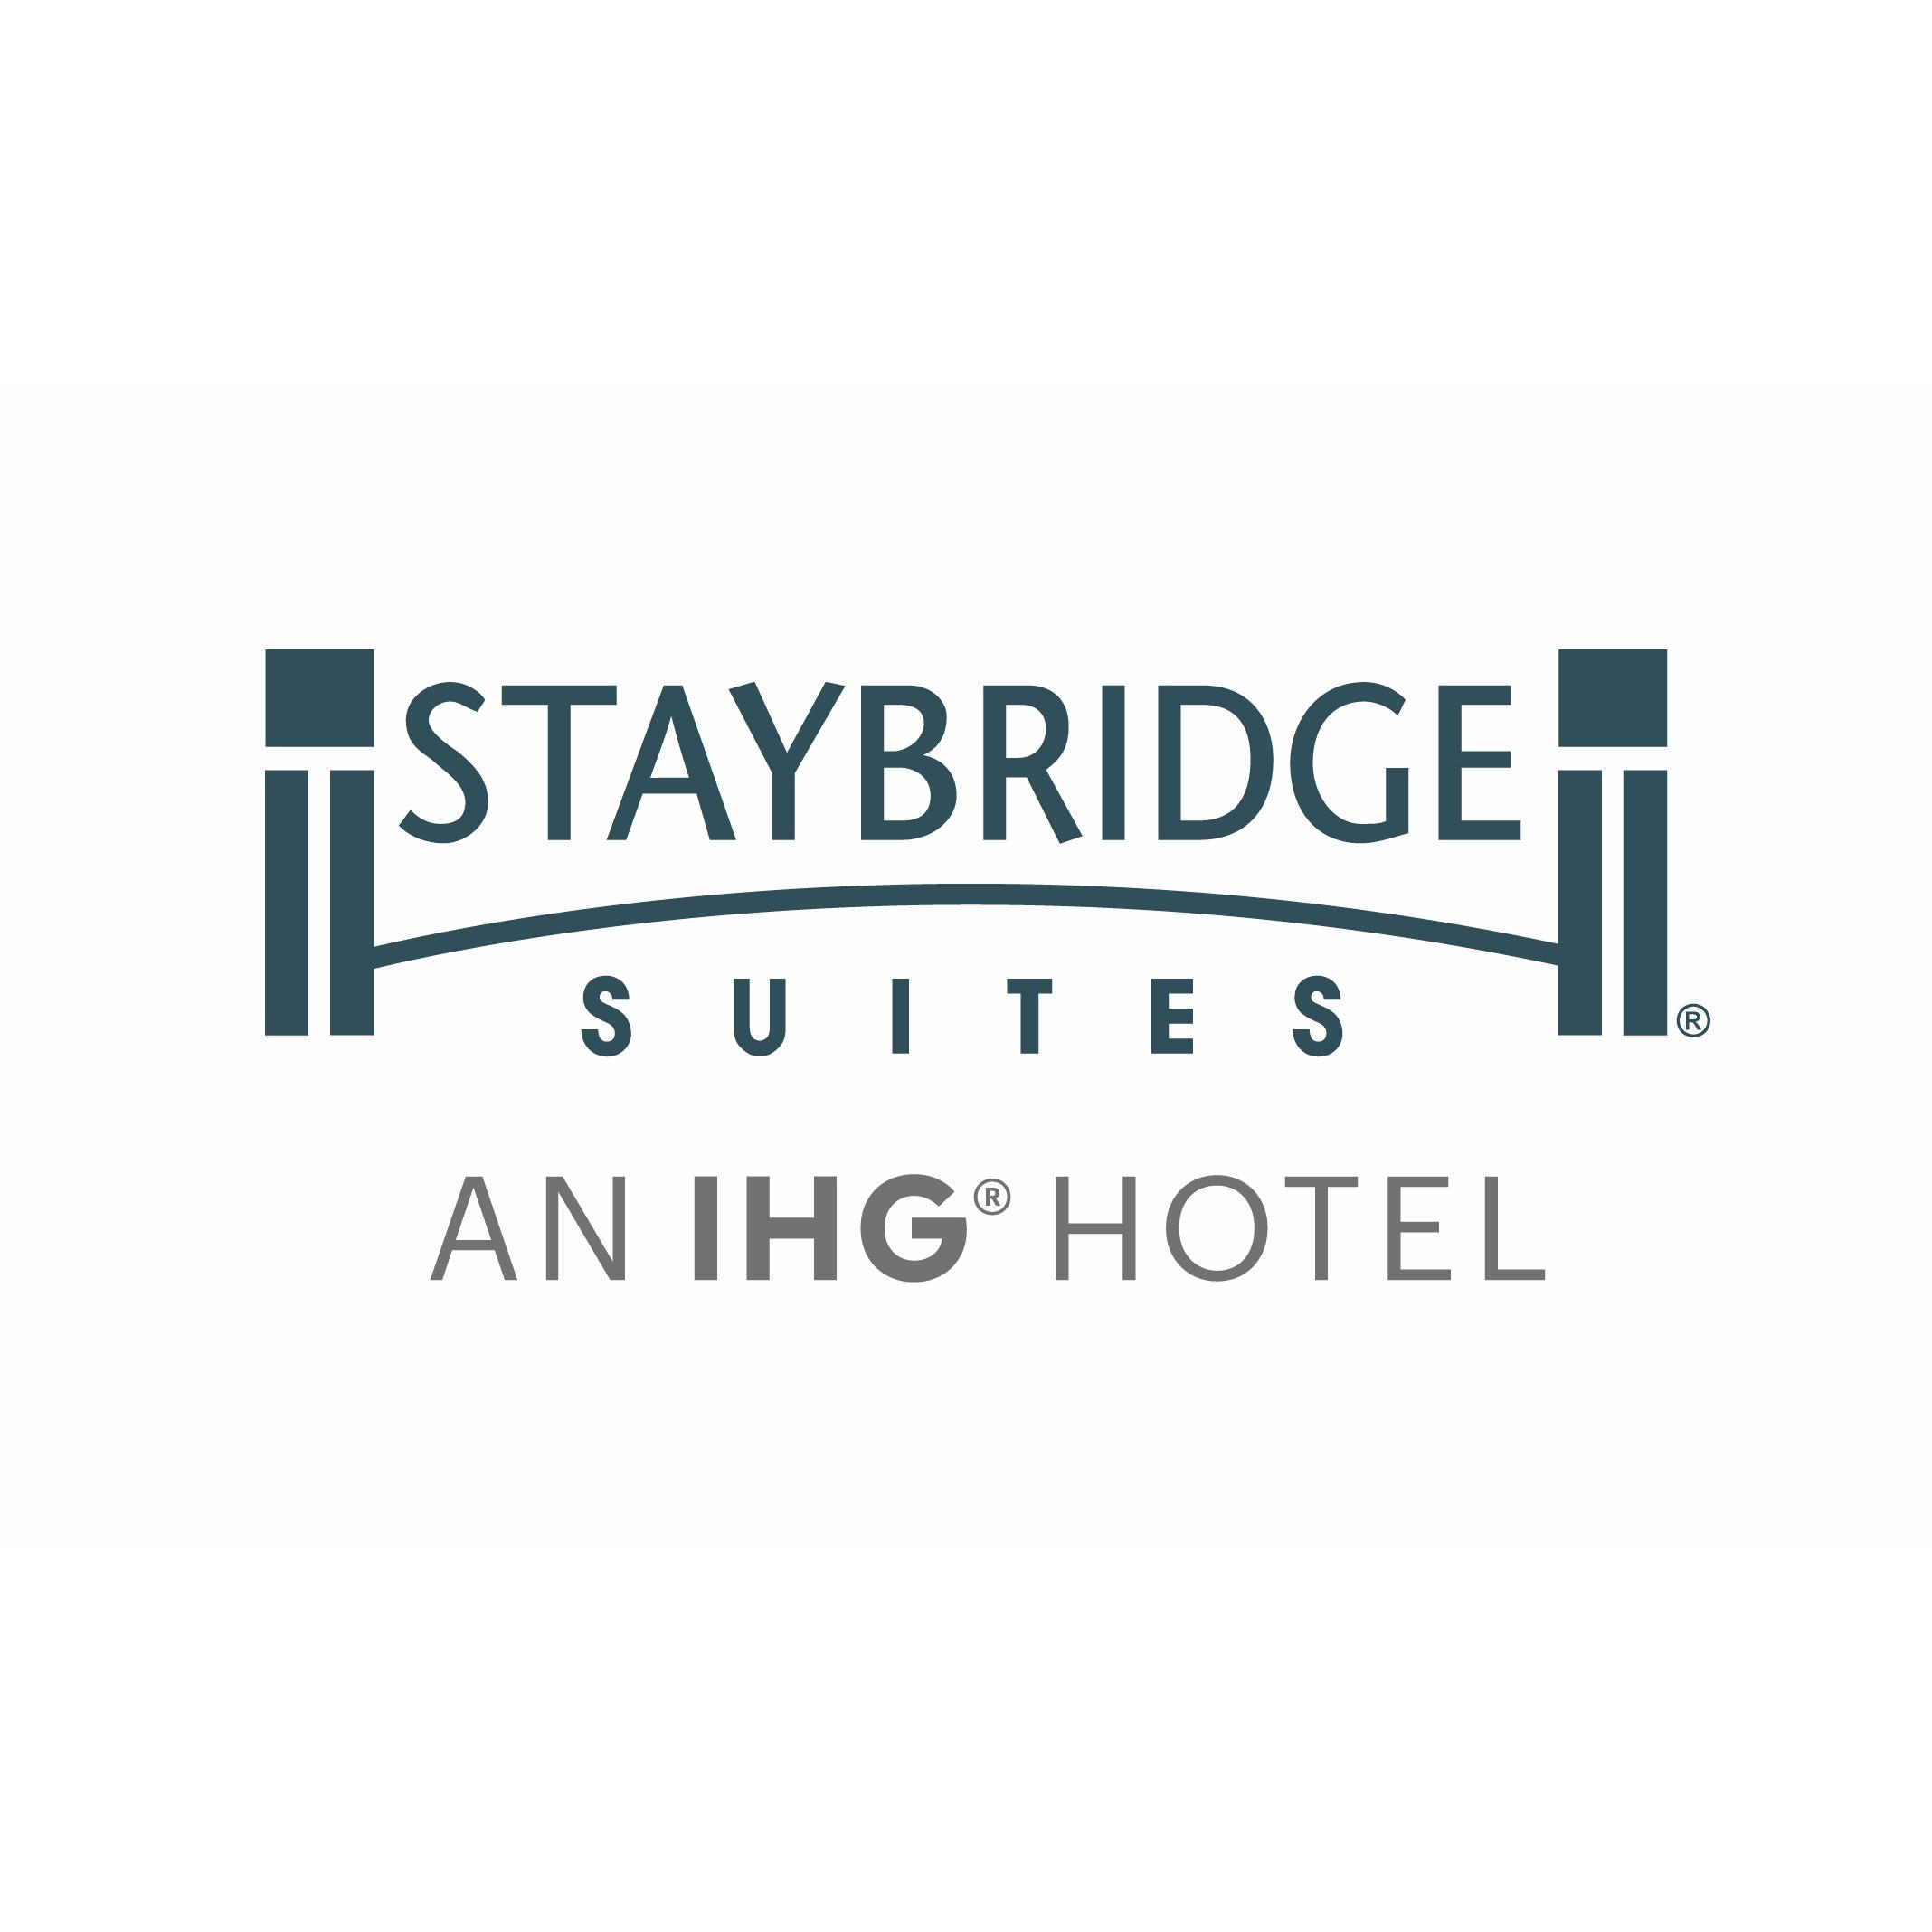 Staybridge Suites Dfw Airport North image 6